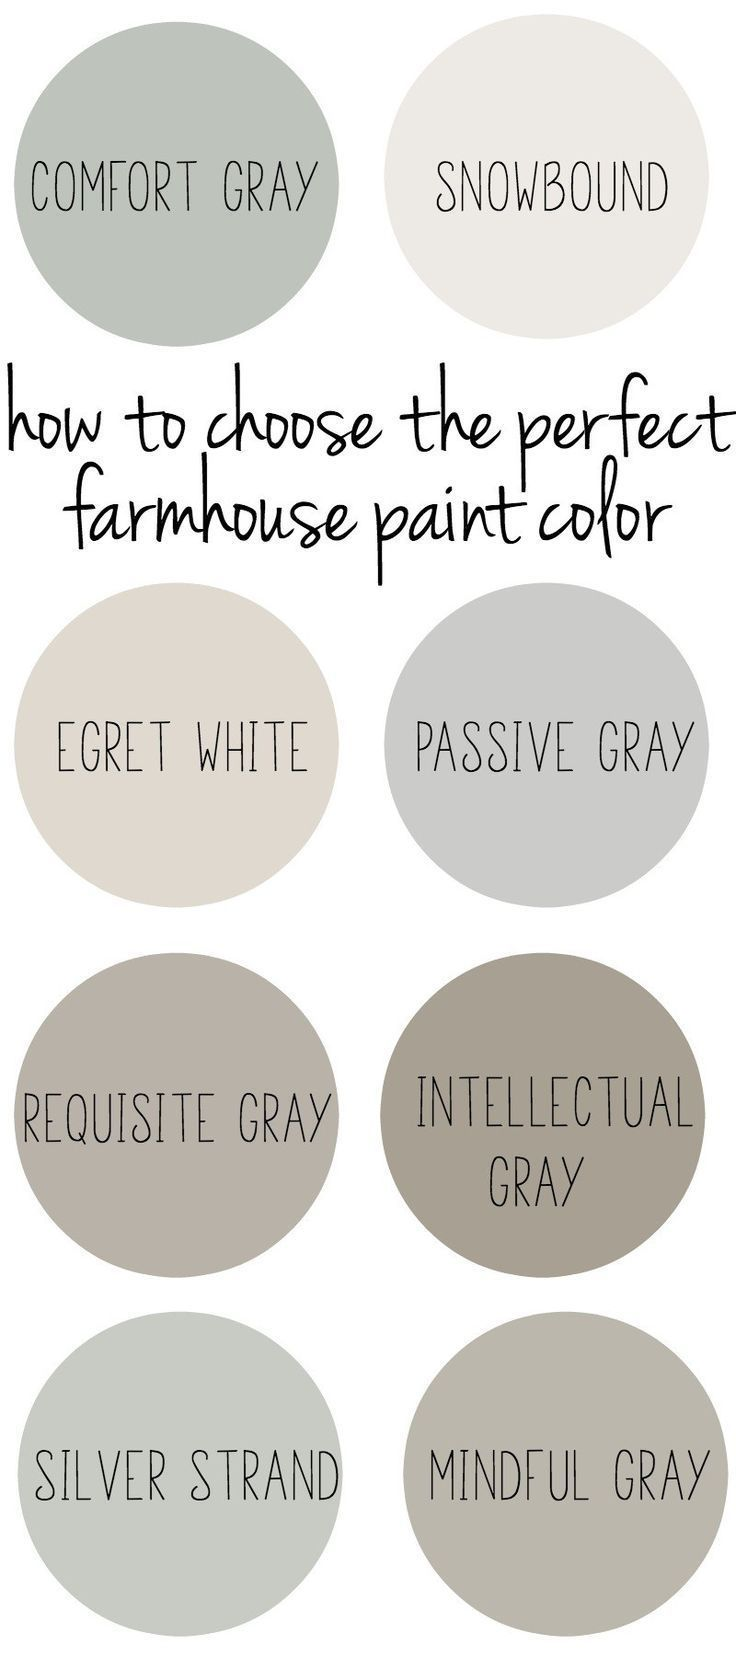 How To Choose The Perfect Farmhouse Paint Colors With Images